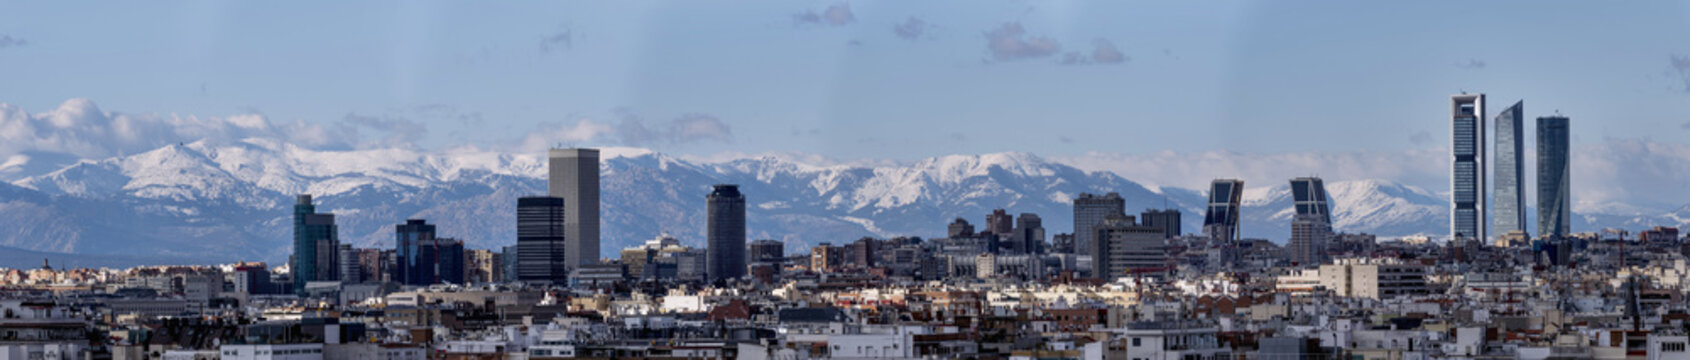 Skyline of the city of Madrid, capital of Spain